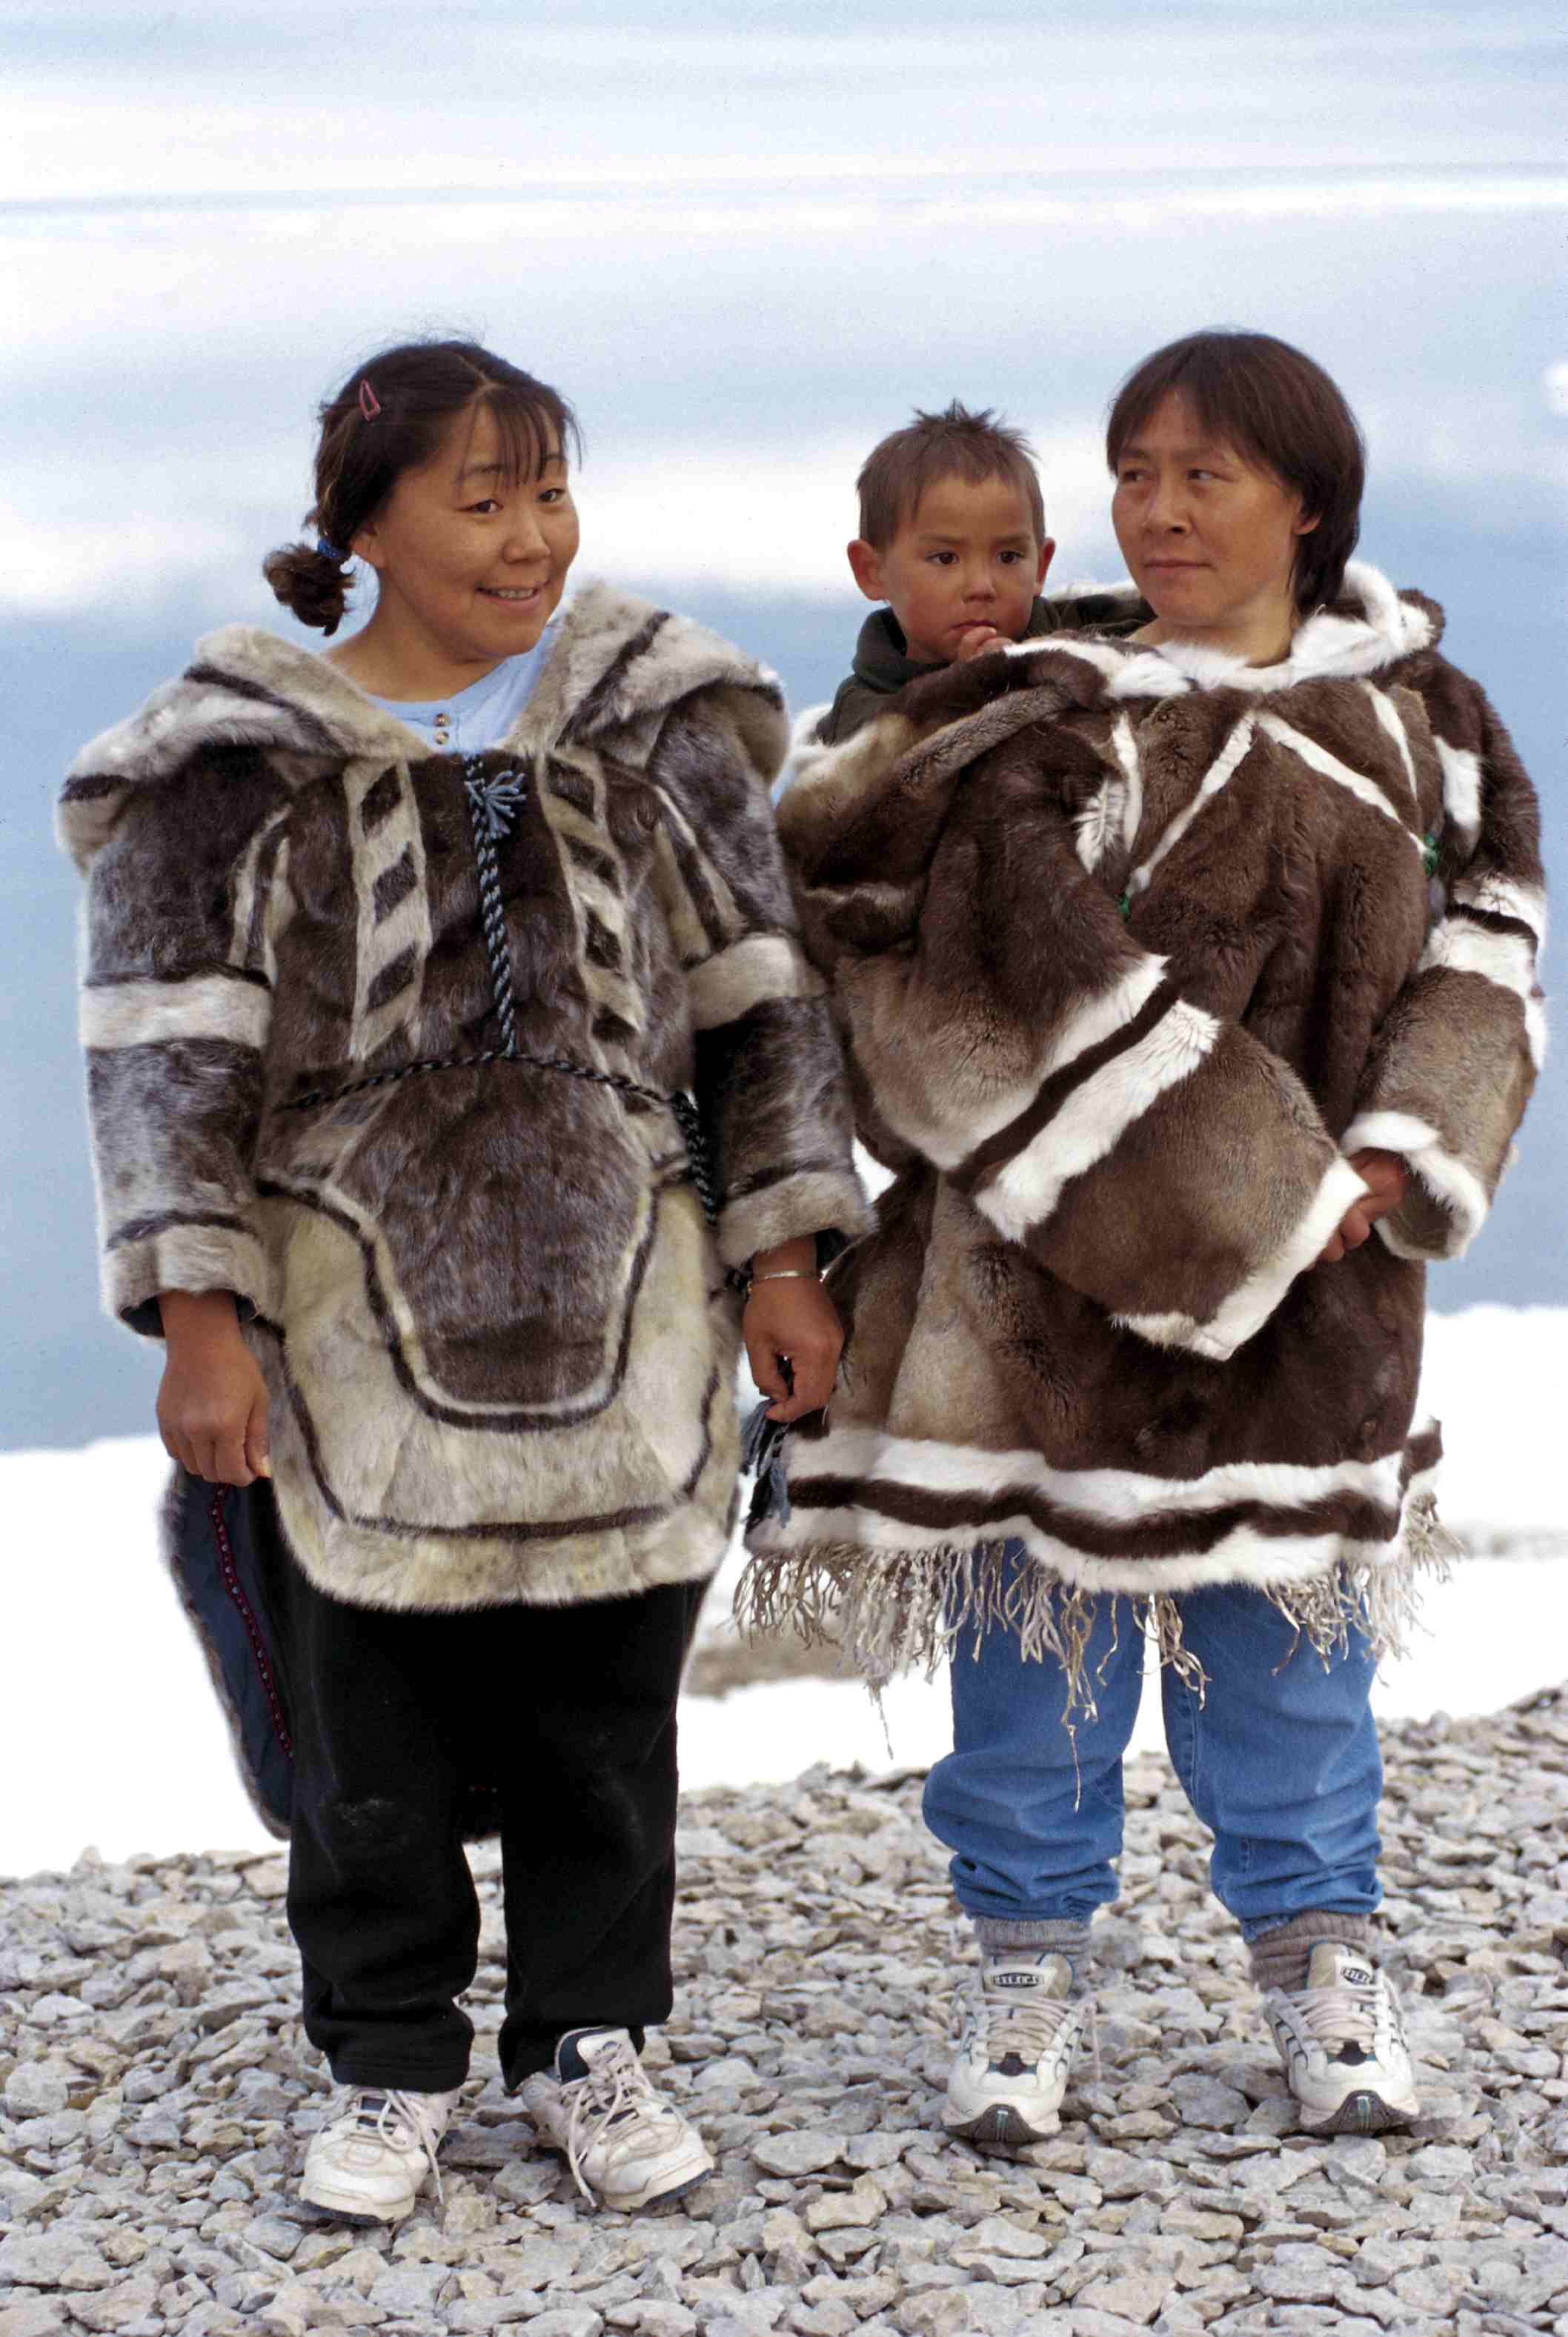 a look at the life practices and culture of the inuit people Inuit in canada have a shorter life expectancy than other people in canada that from a report entitled 'life is short' from the conference board of canada's centre for the north.